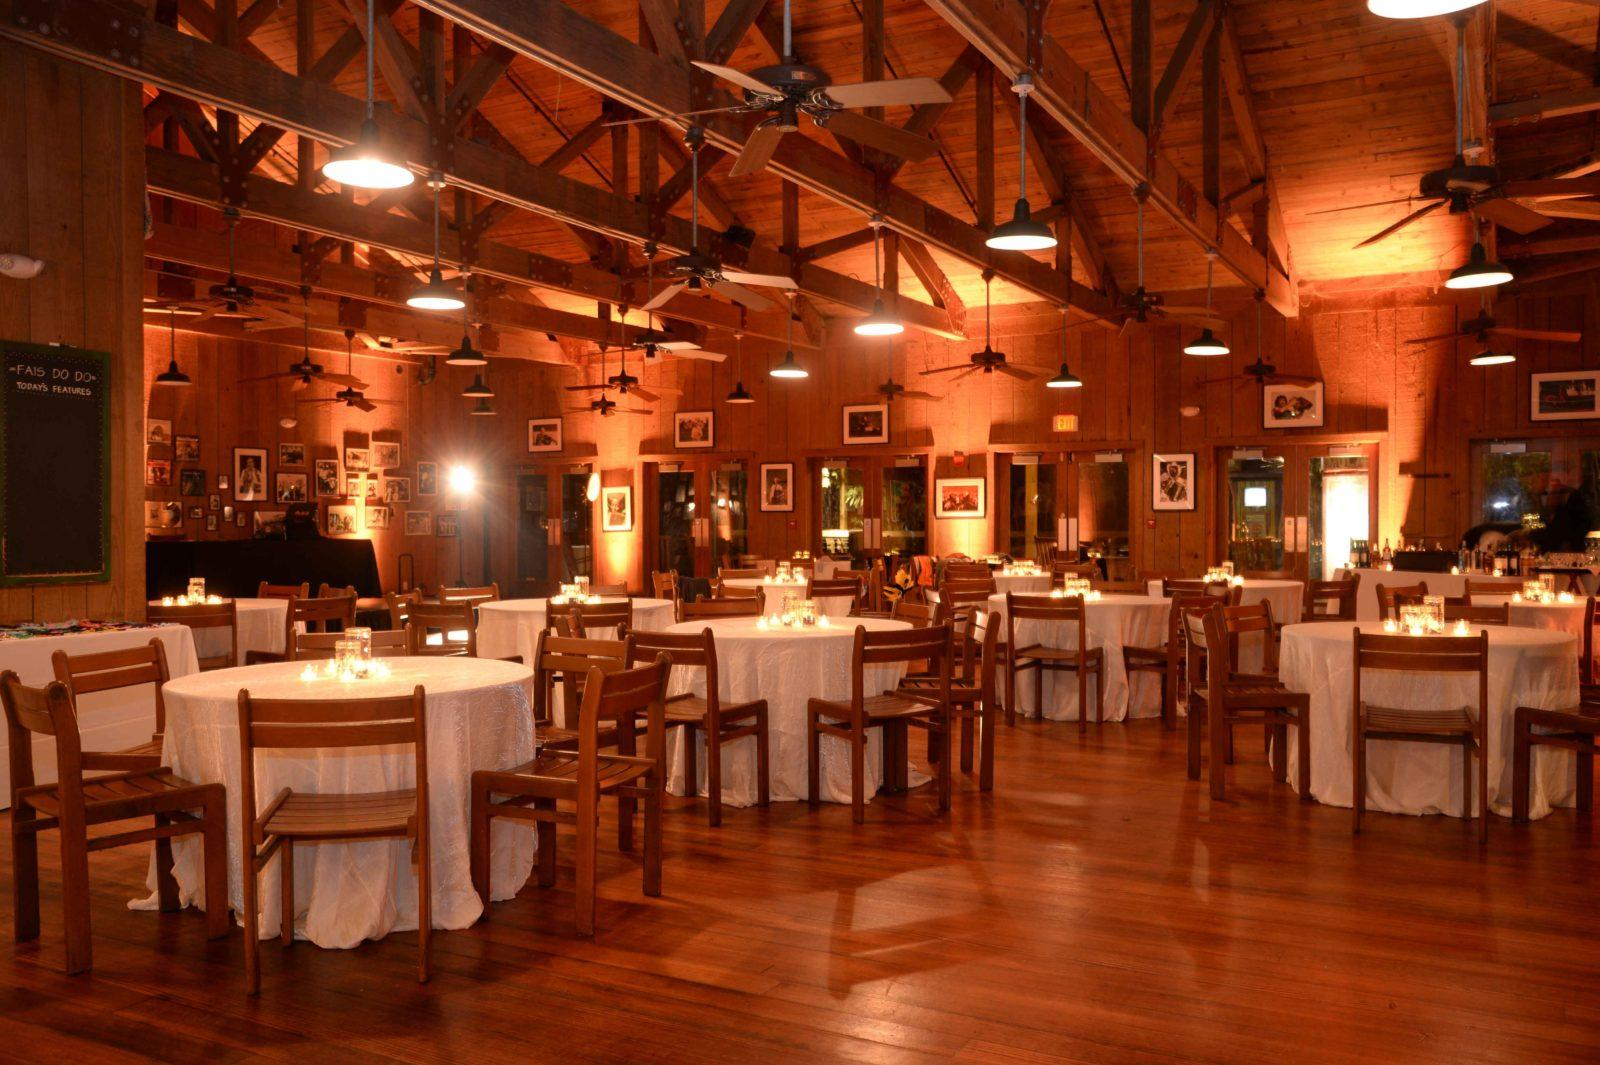 The Cajun Ballroom set for a wedding reception. Photo: Audubon Special Events